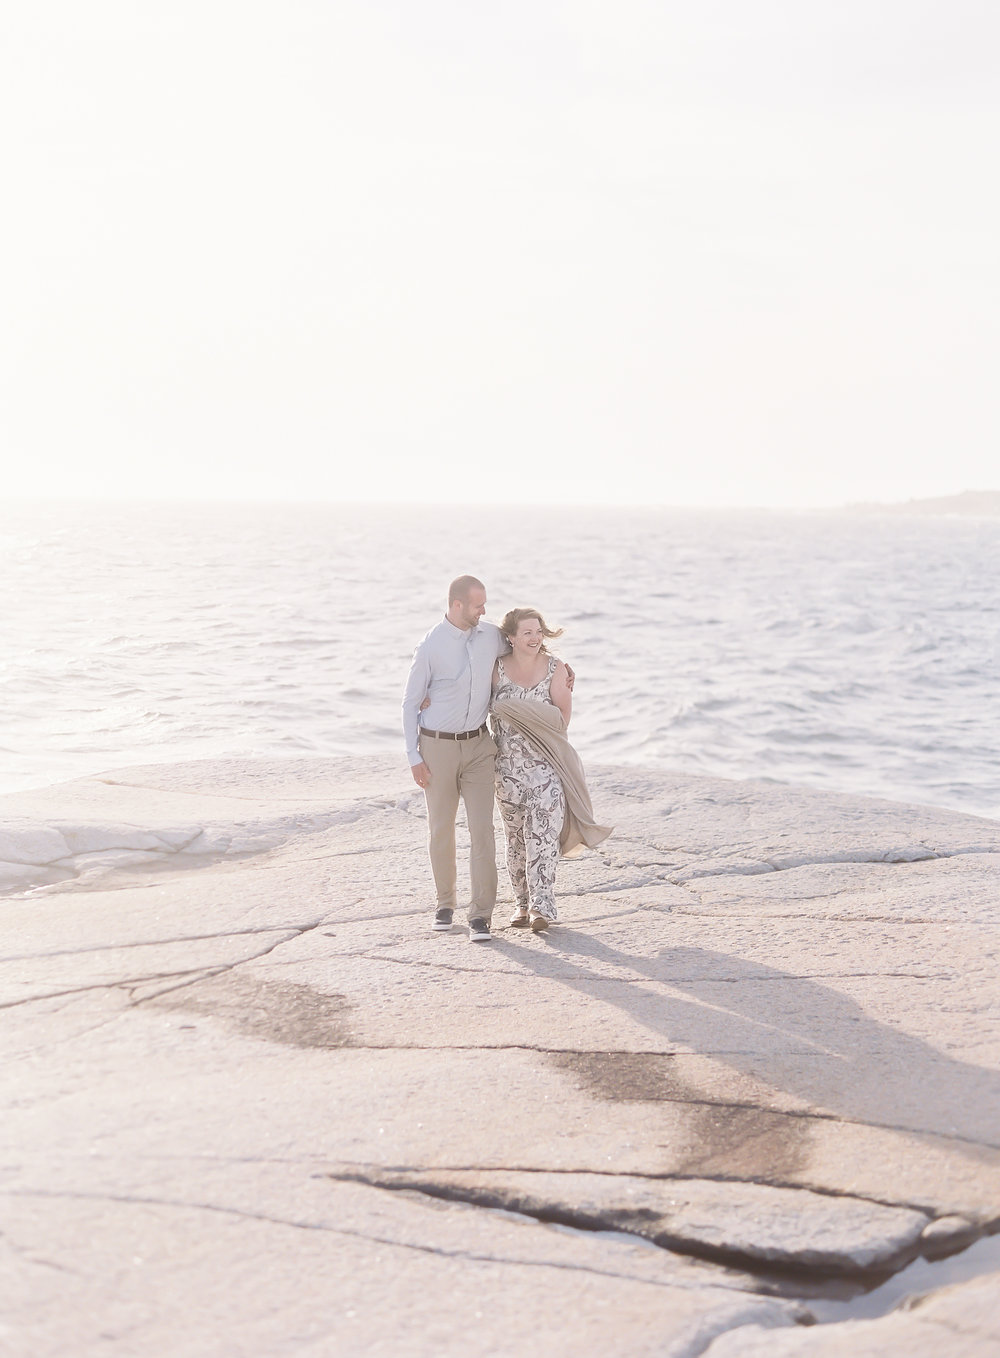 Jacqueline Anne Photography - Alex and Andrew Engagement at Peggy's Cove - Halifax-88.jpg